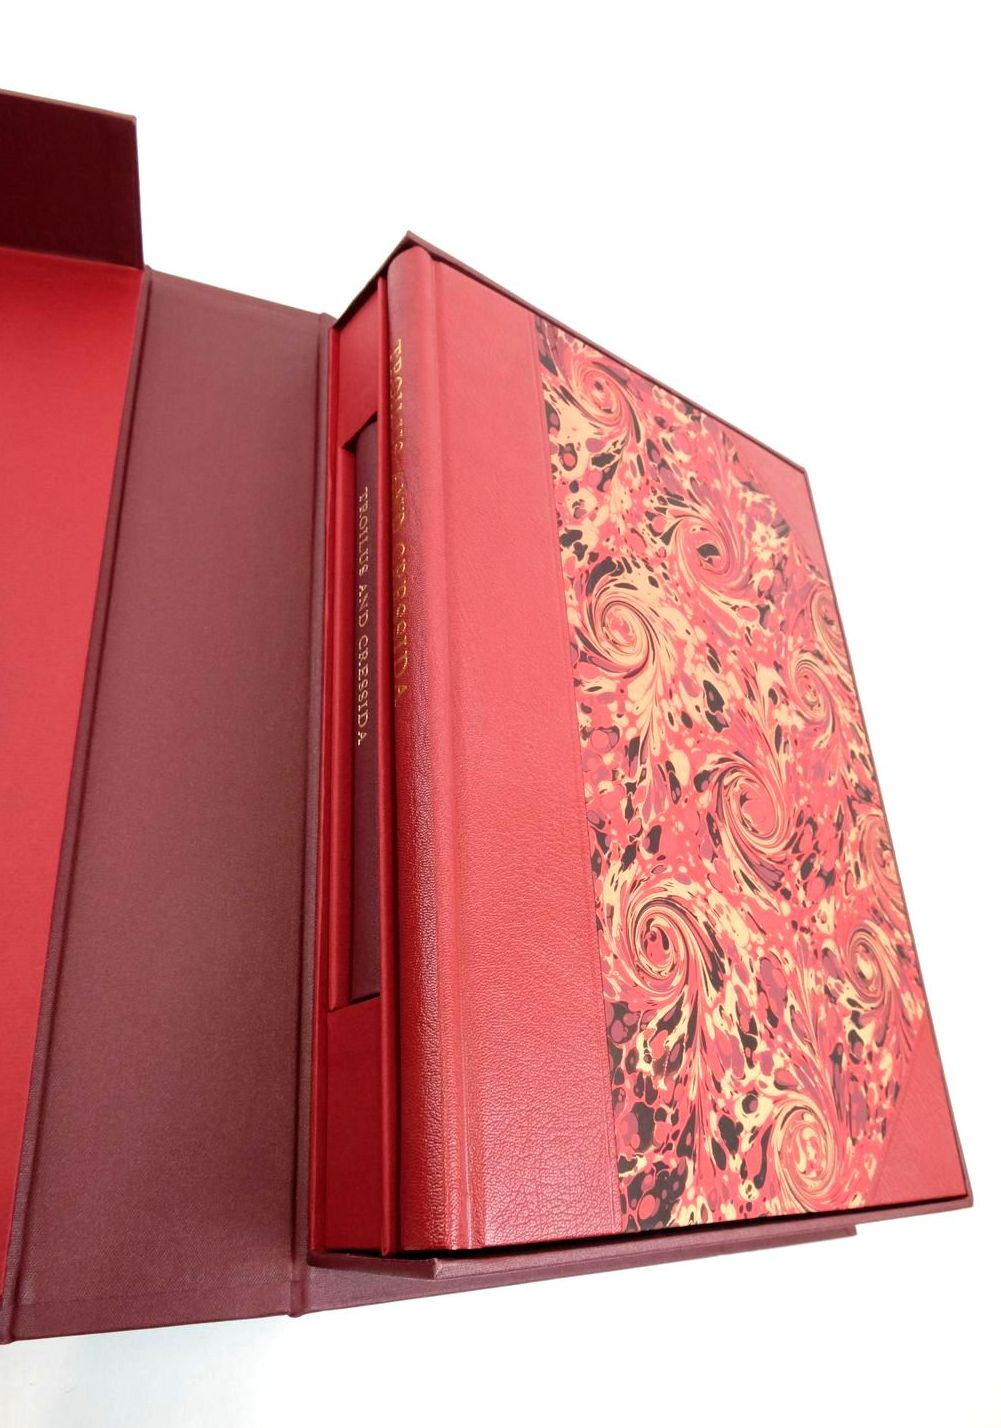 Photo of TROILUS AND CRESSIDA (THE LETTERPRESS SHAKESPEARE) written by Shakespeare, William Muir, Kenneth published by Folio Society (STOCK CODE: 1821434)  for sale by Stella & Rose's Books